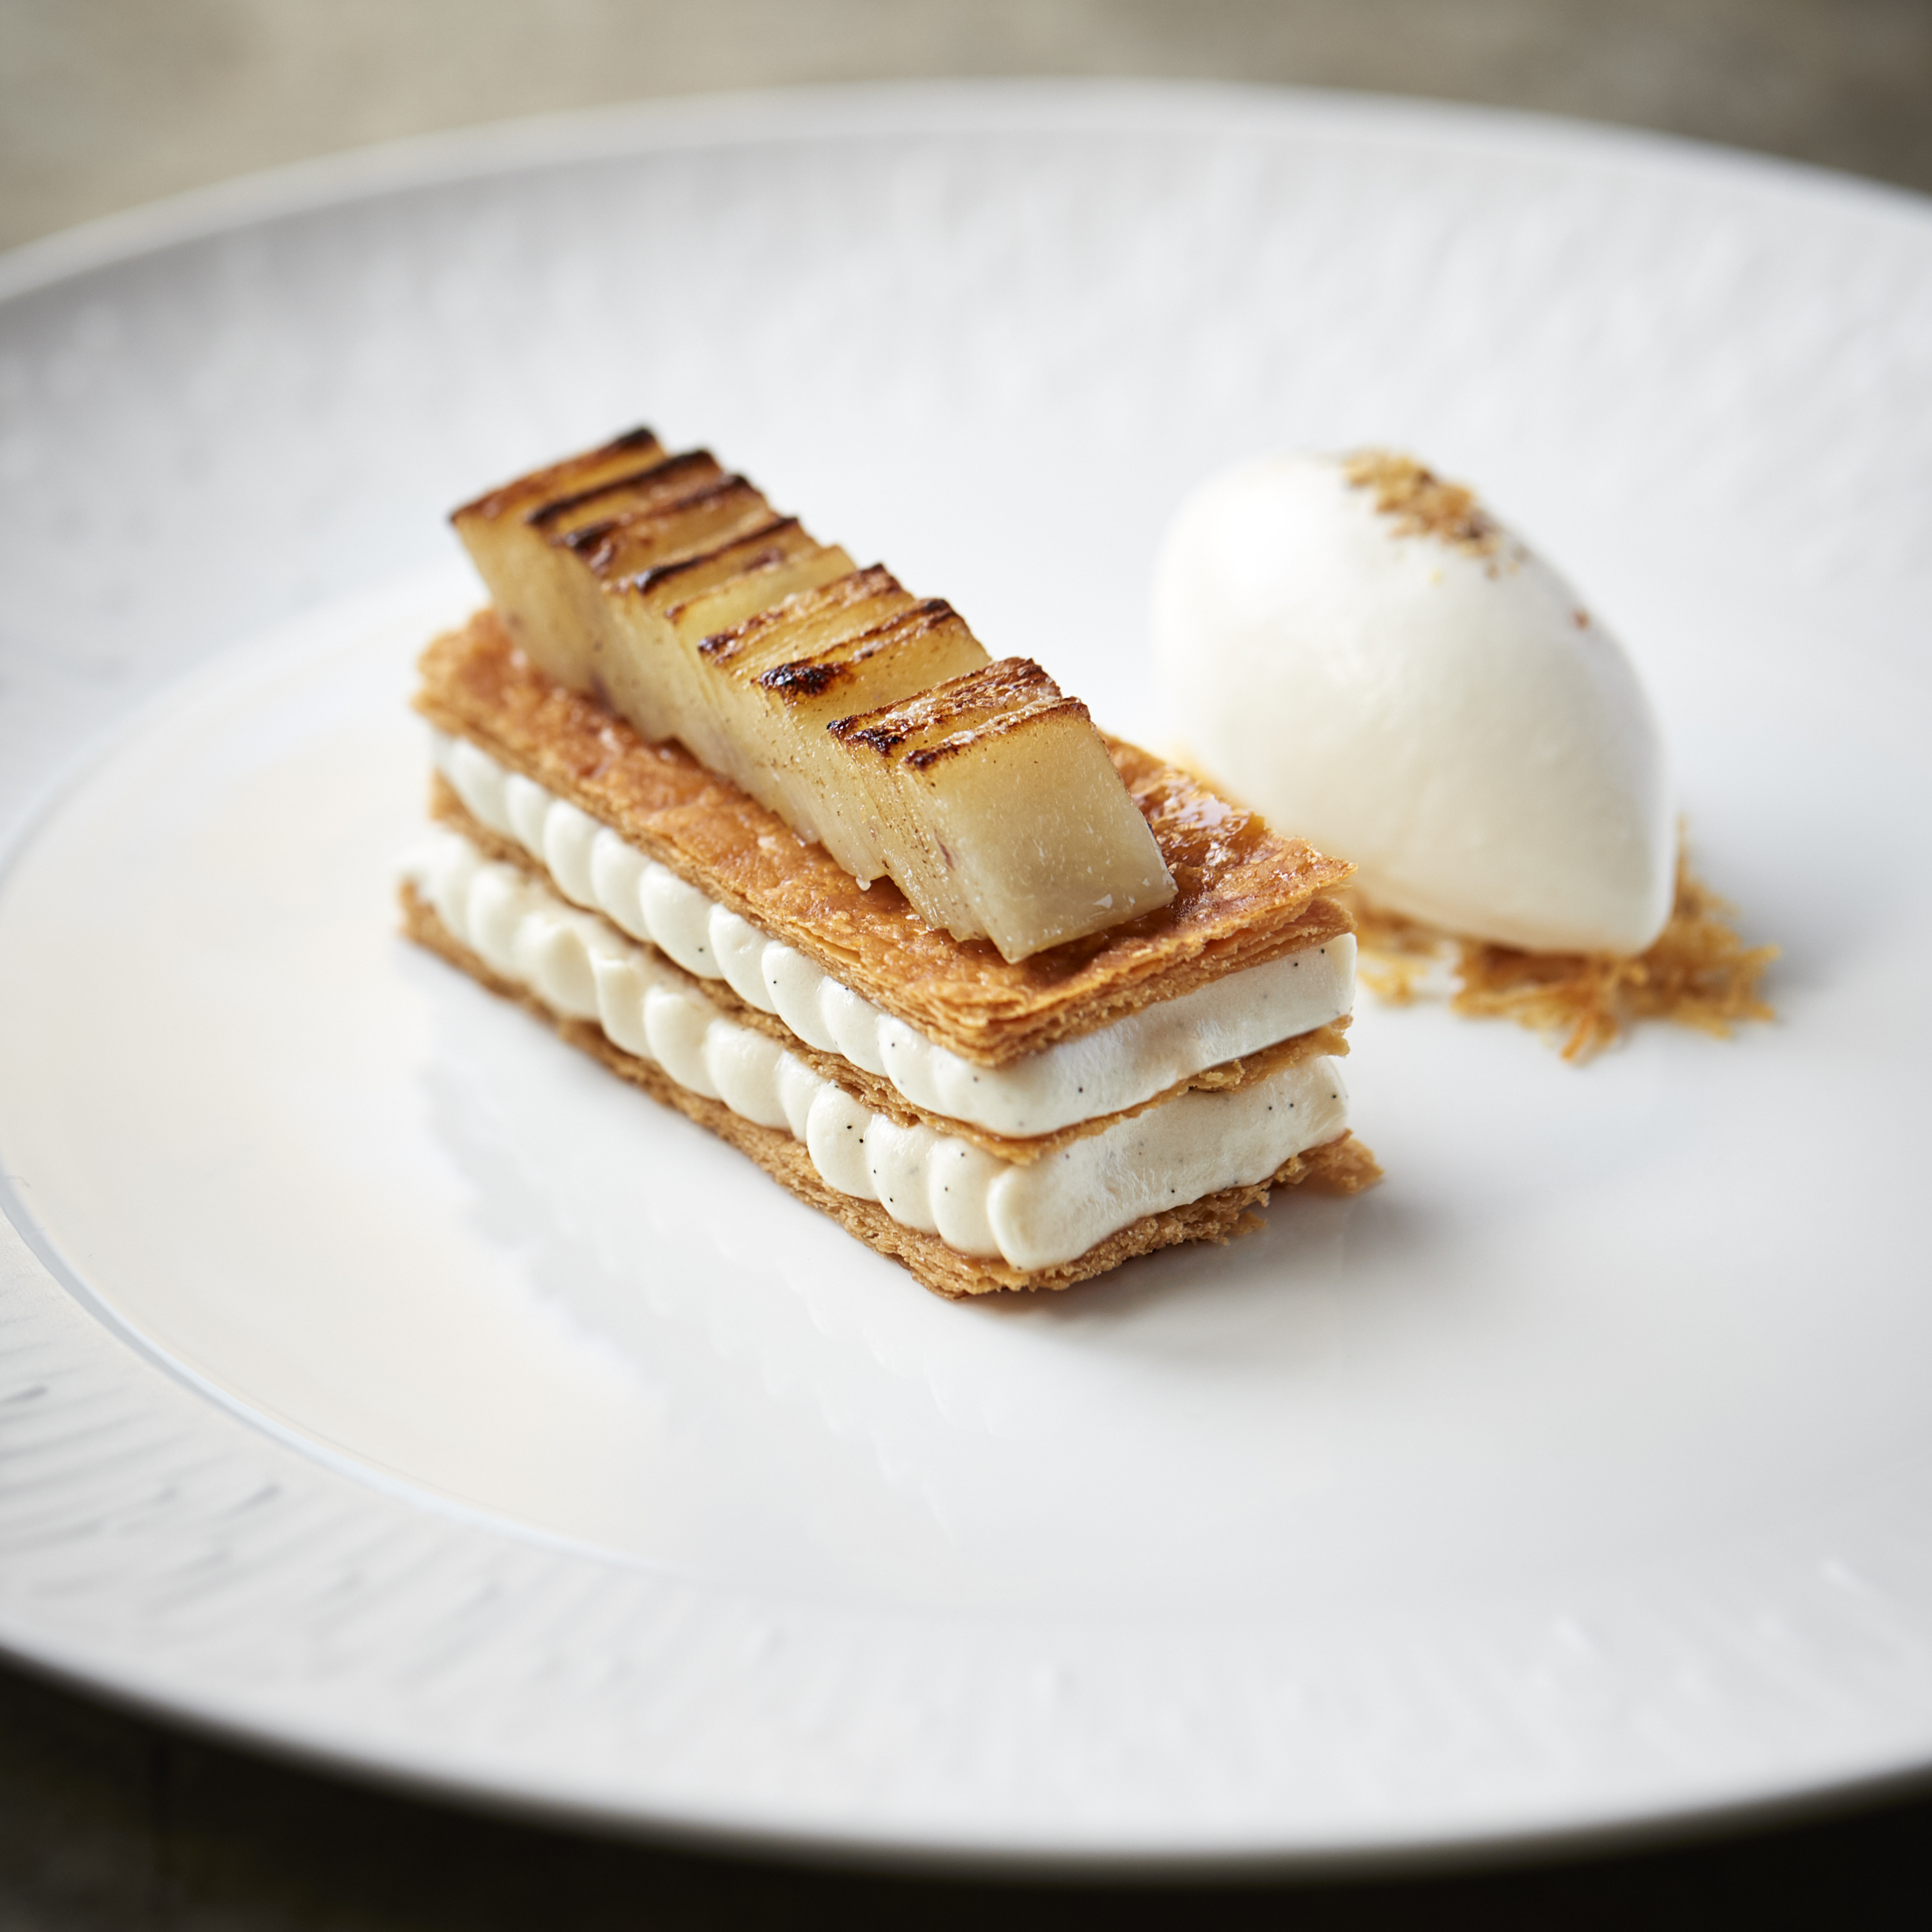 Potato millefeuille with sake and white chocolate at Trivet in London Bridge